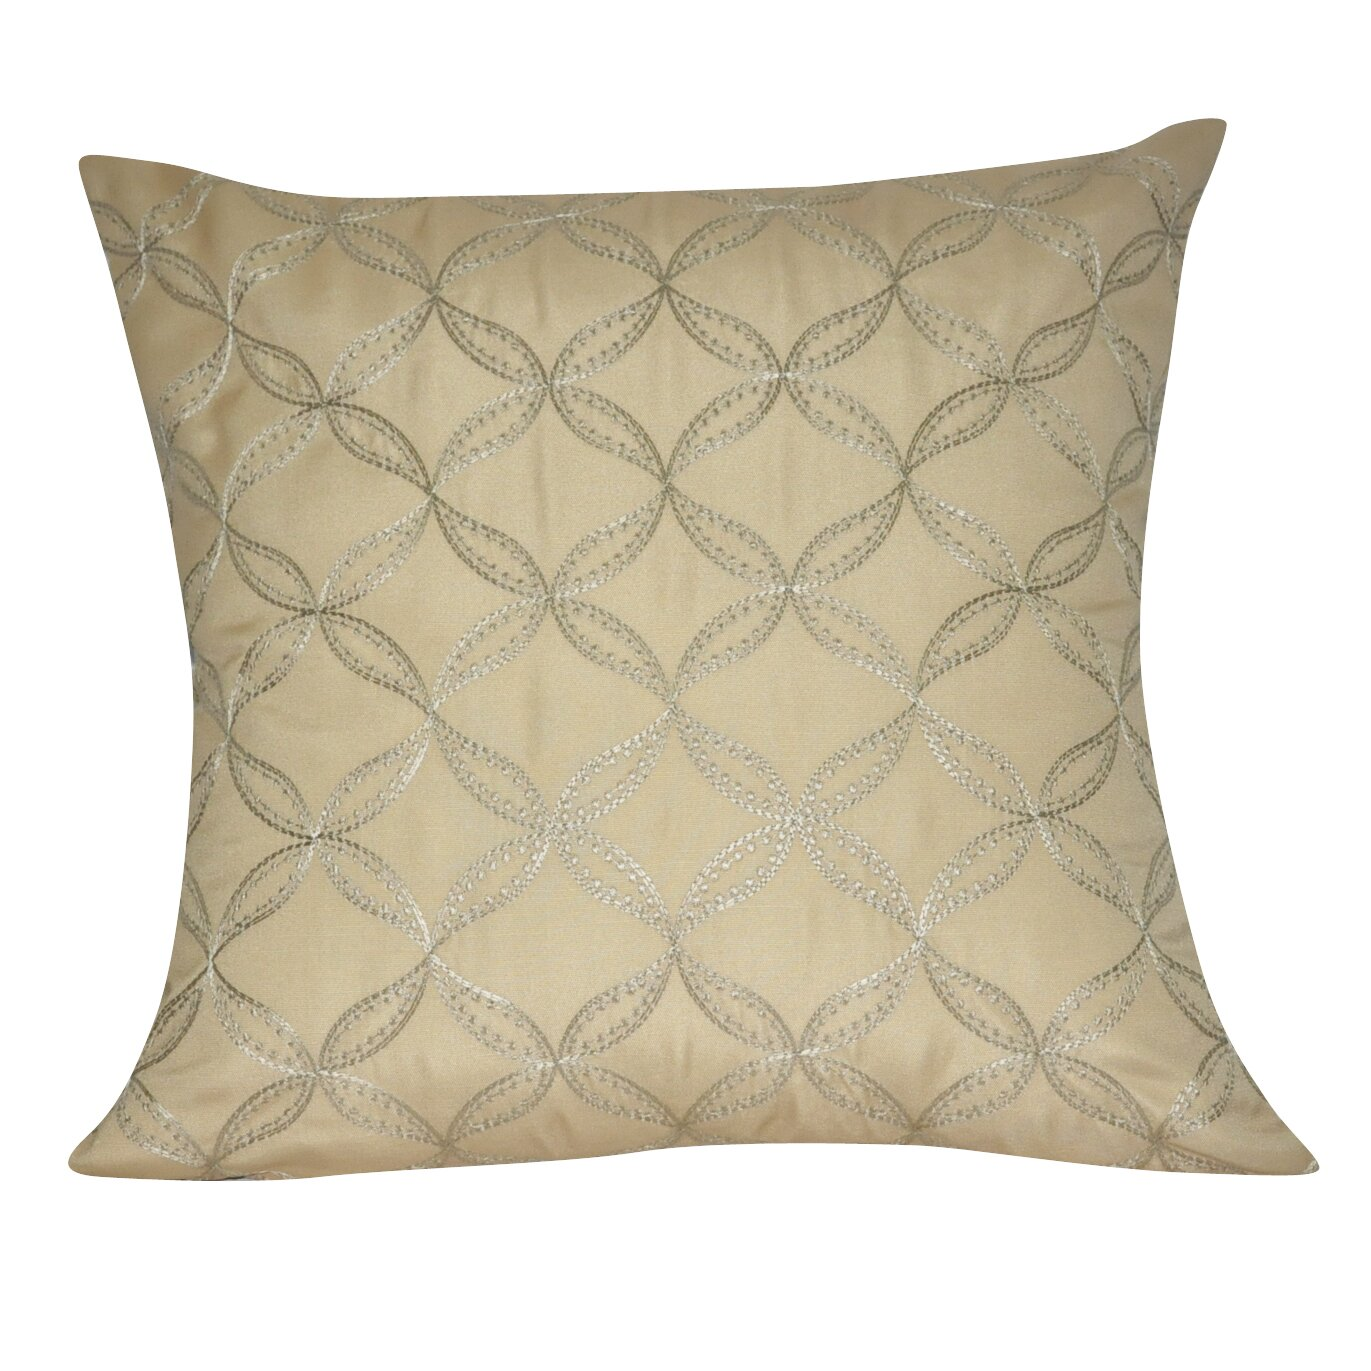 Decorative Pillow Wayfair : Loom and Mill Circles Decorative Throw Pillow & Reviews Wayfair.ca